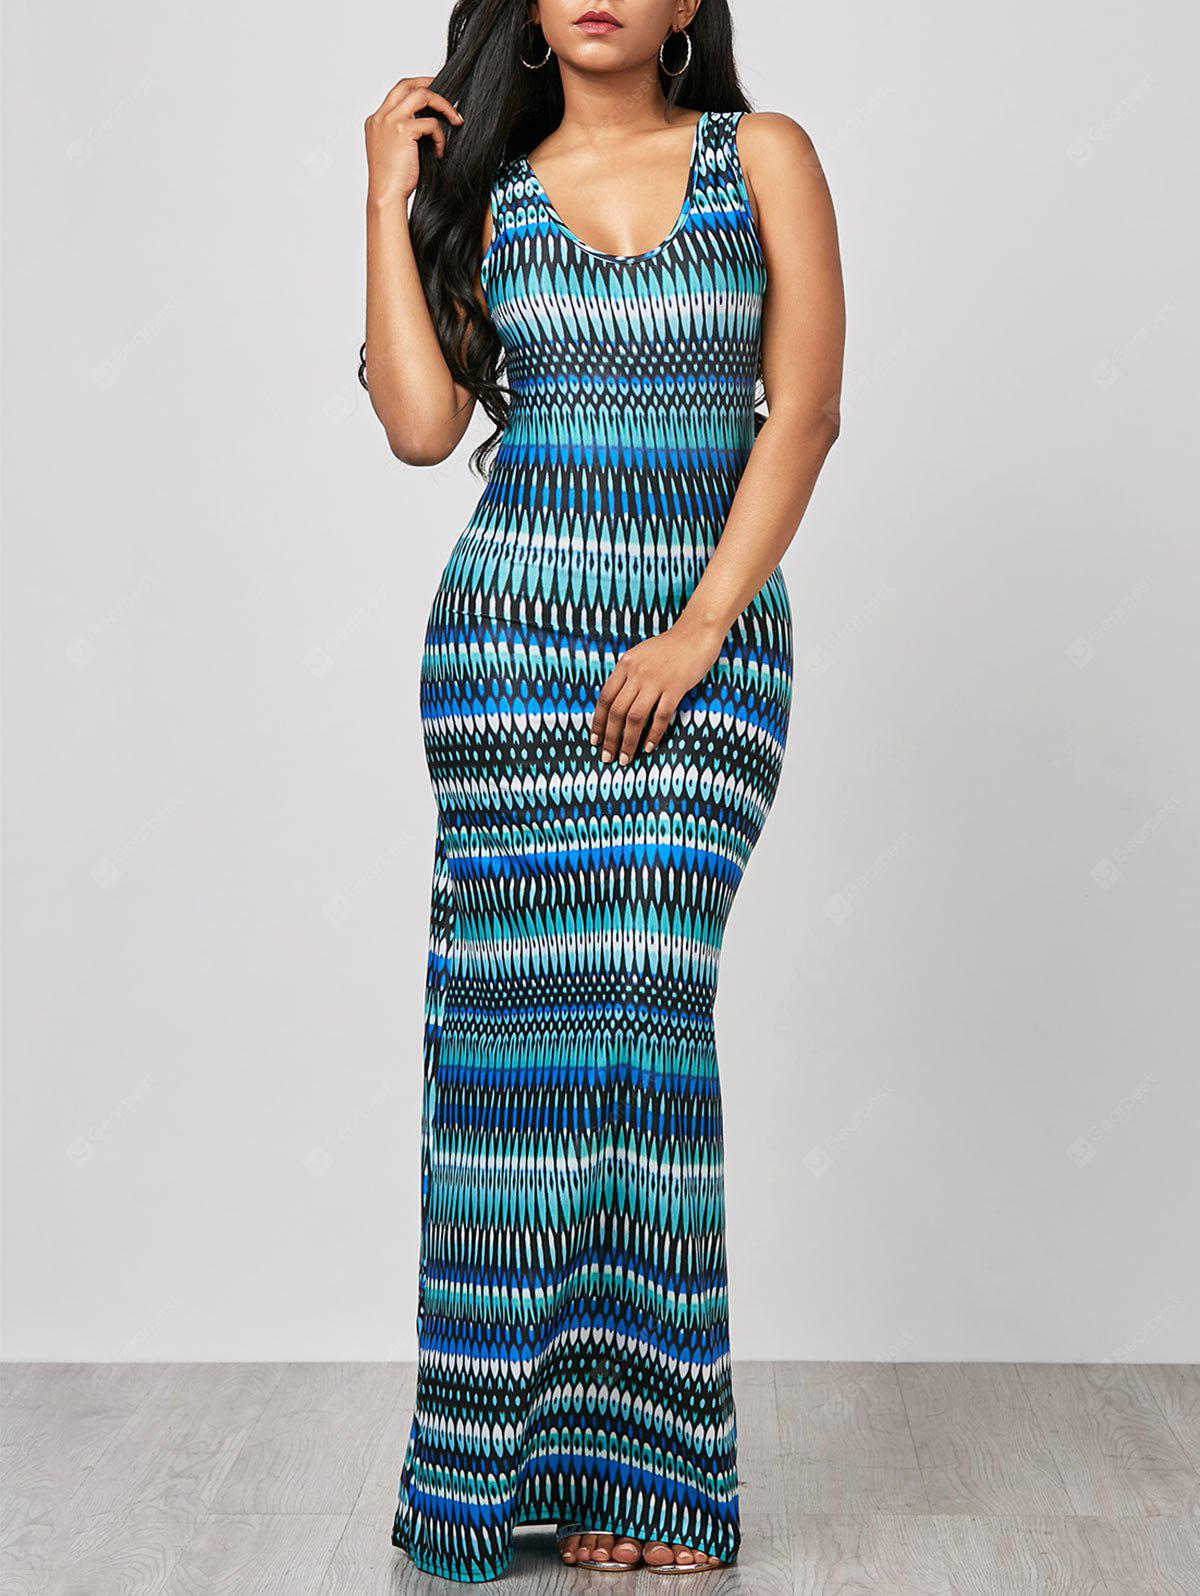 COLORMIX XL Sleeveless Ornate Print Maxi Beach Dress